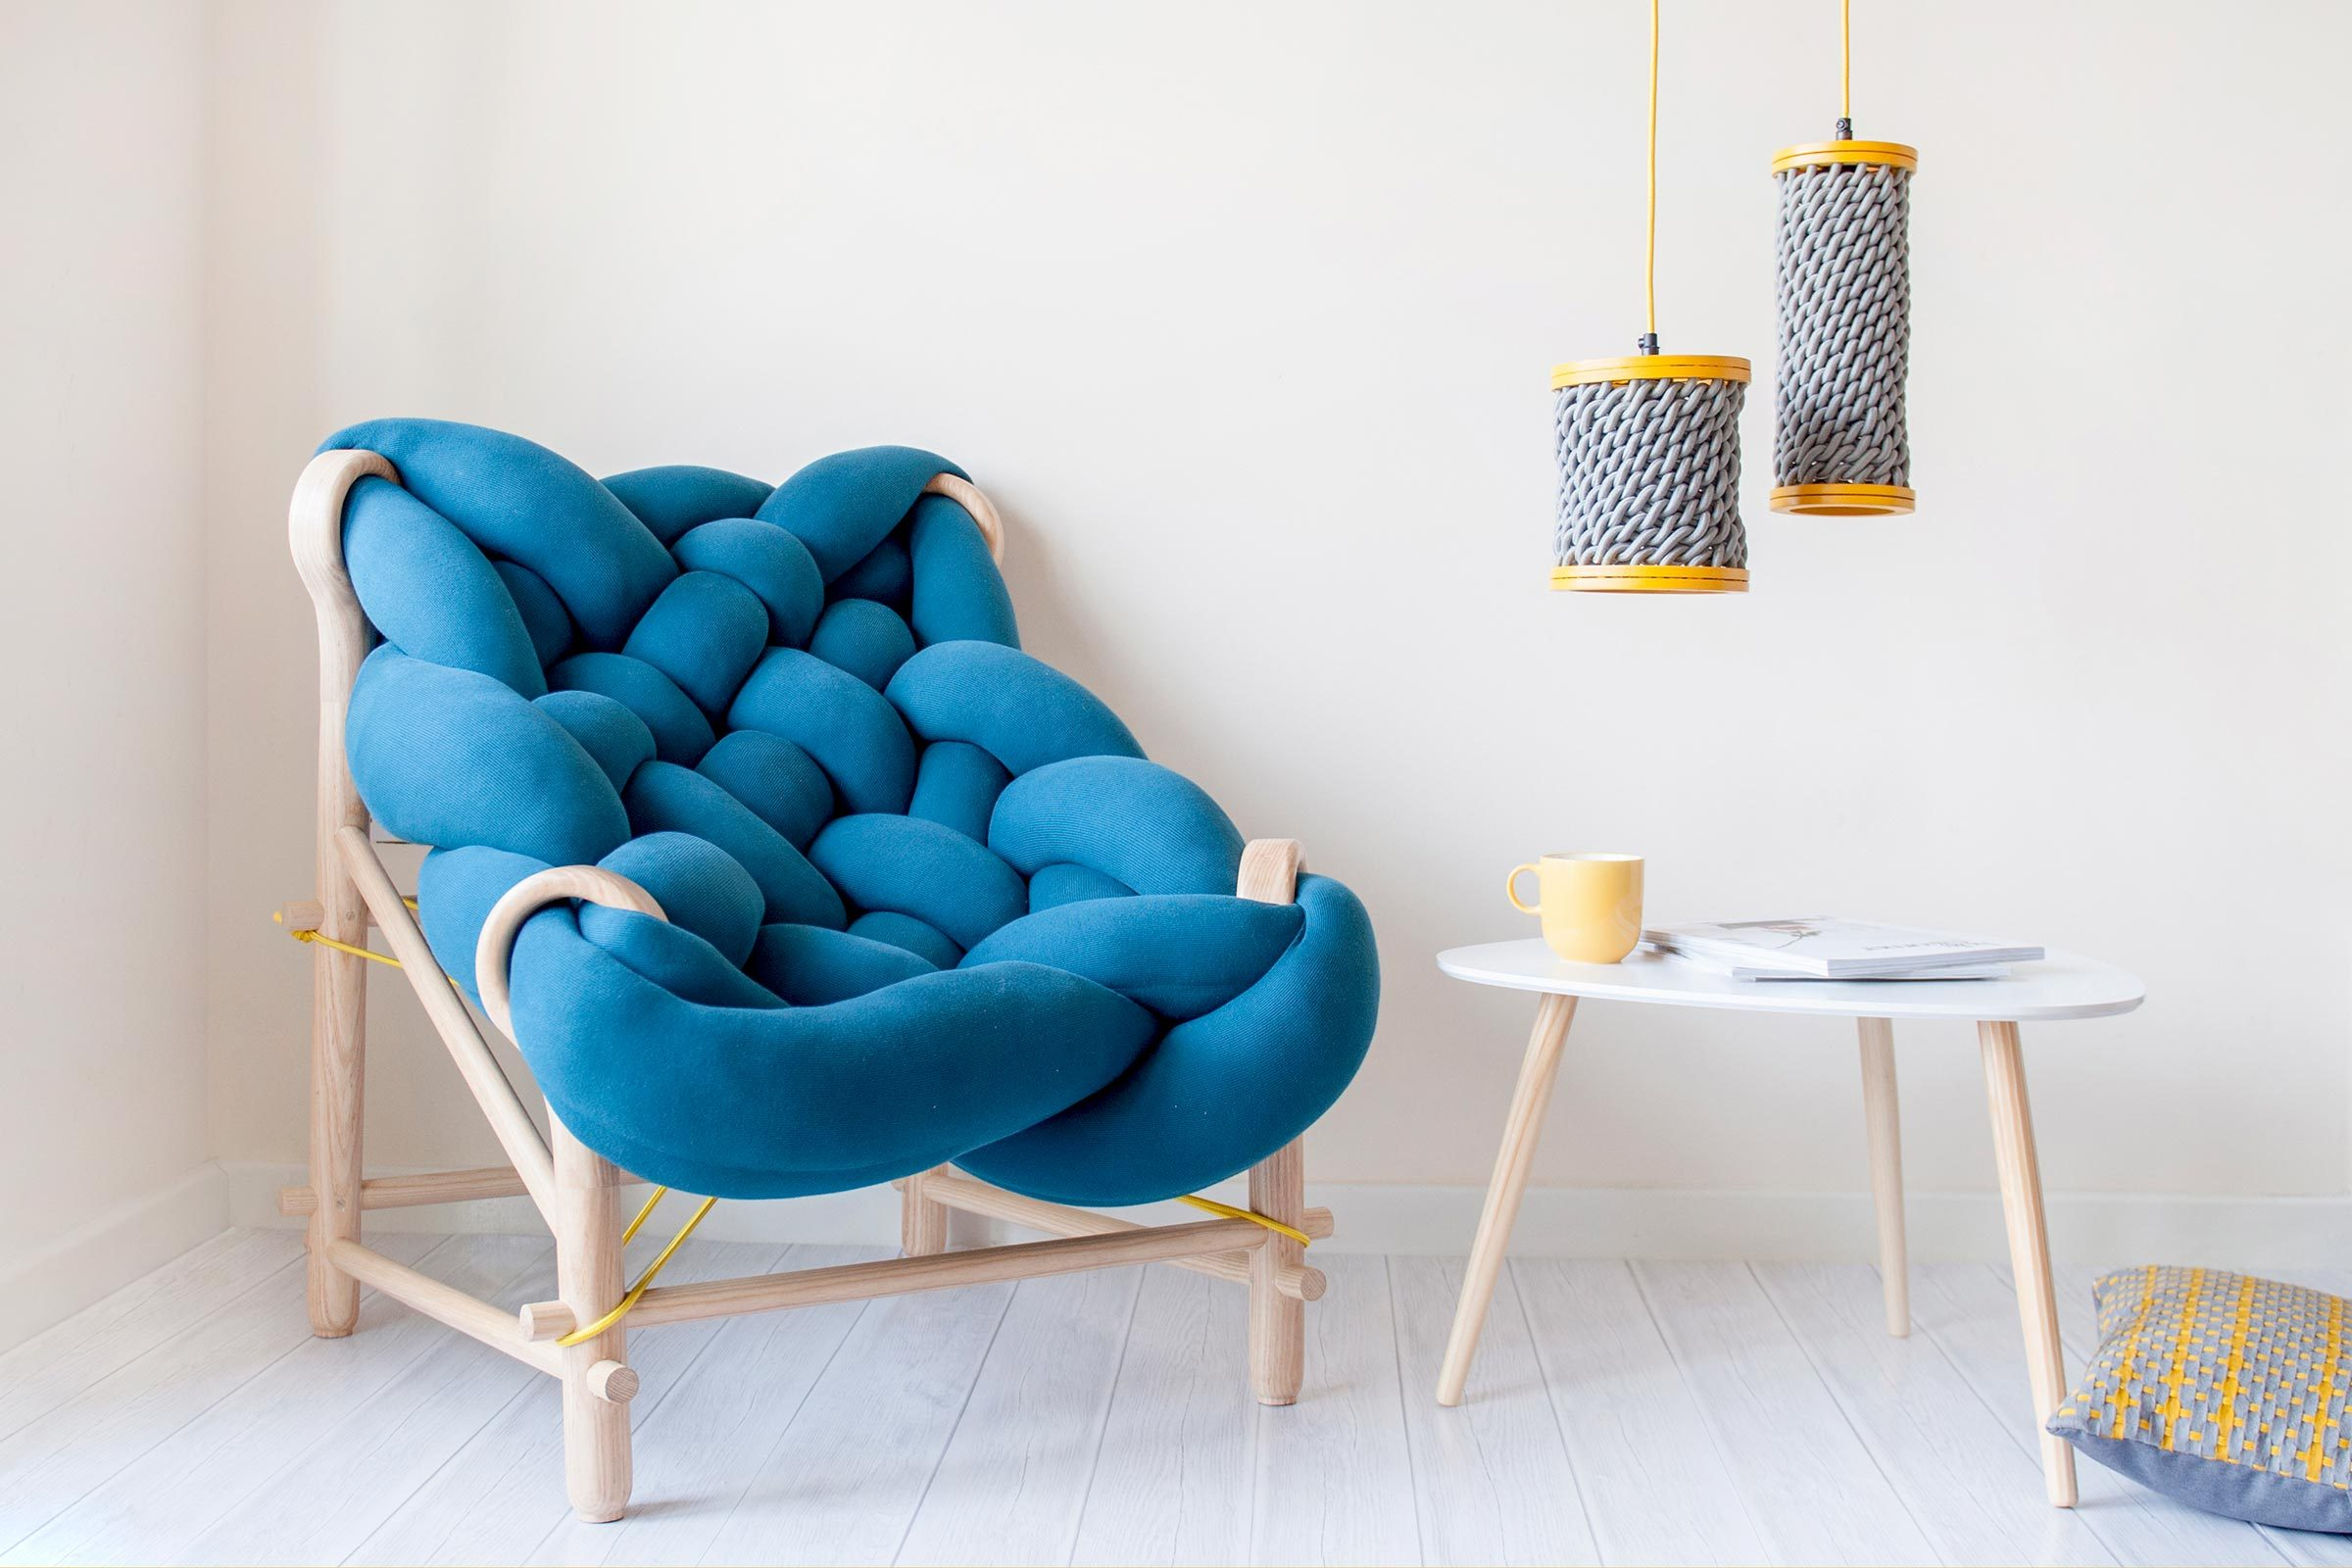 Cozy Reading Chair from Veegadesign